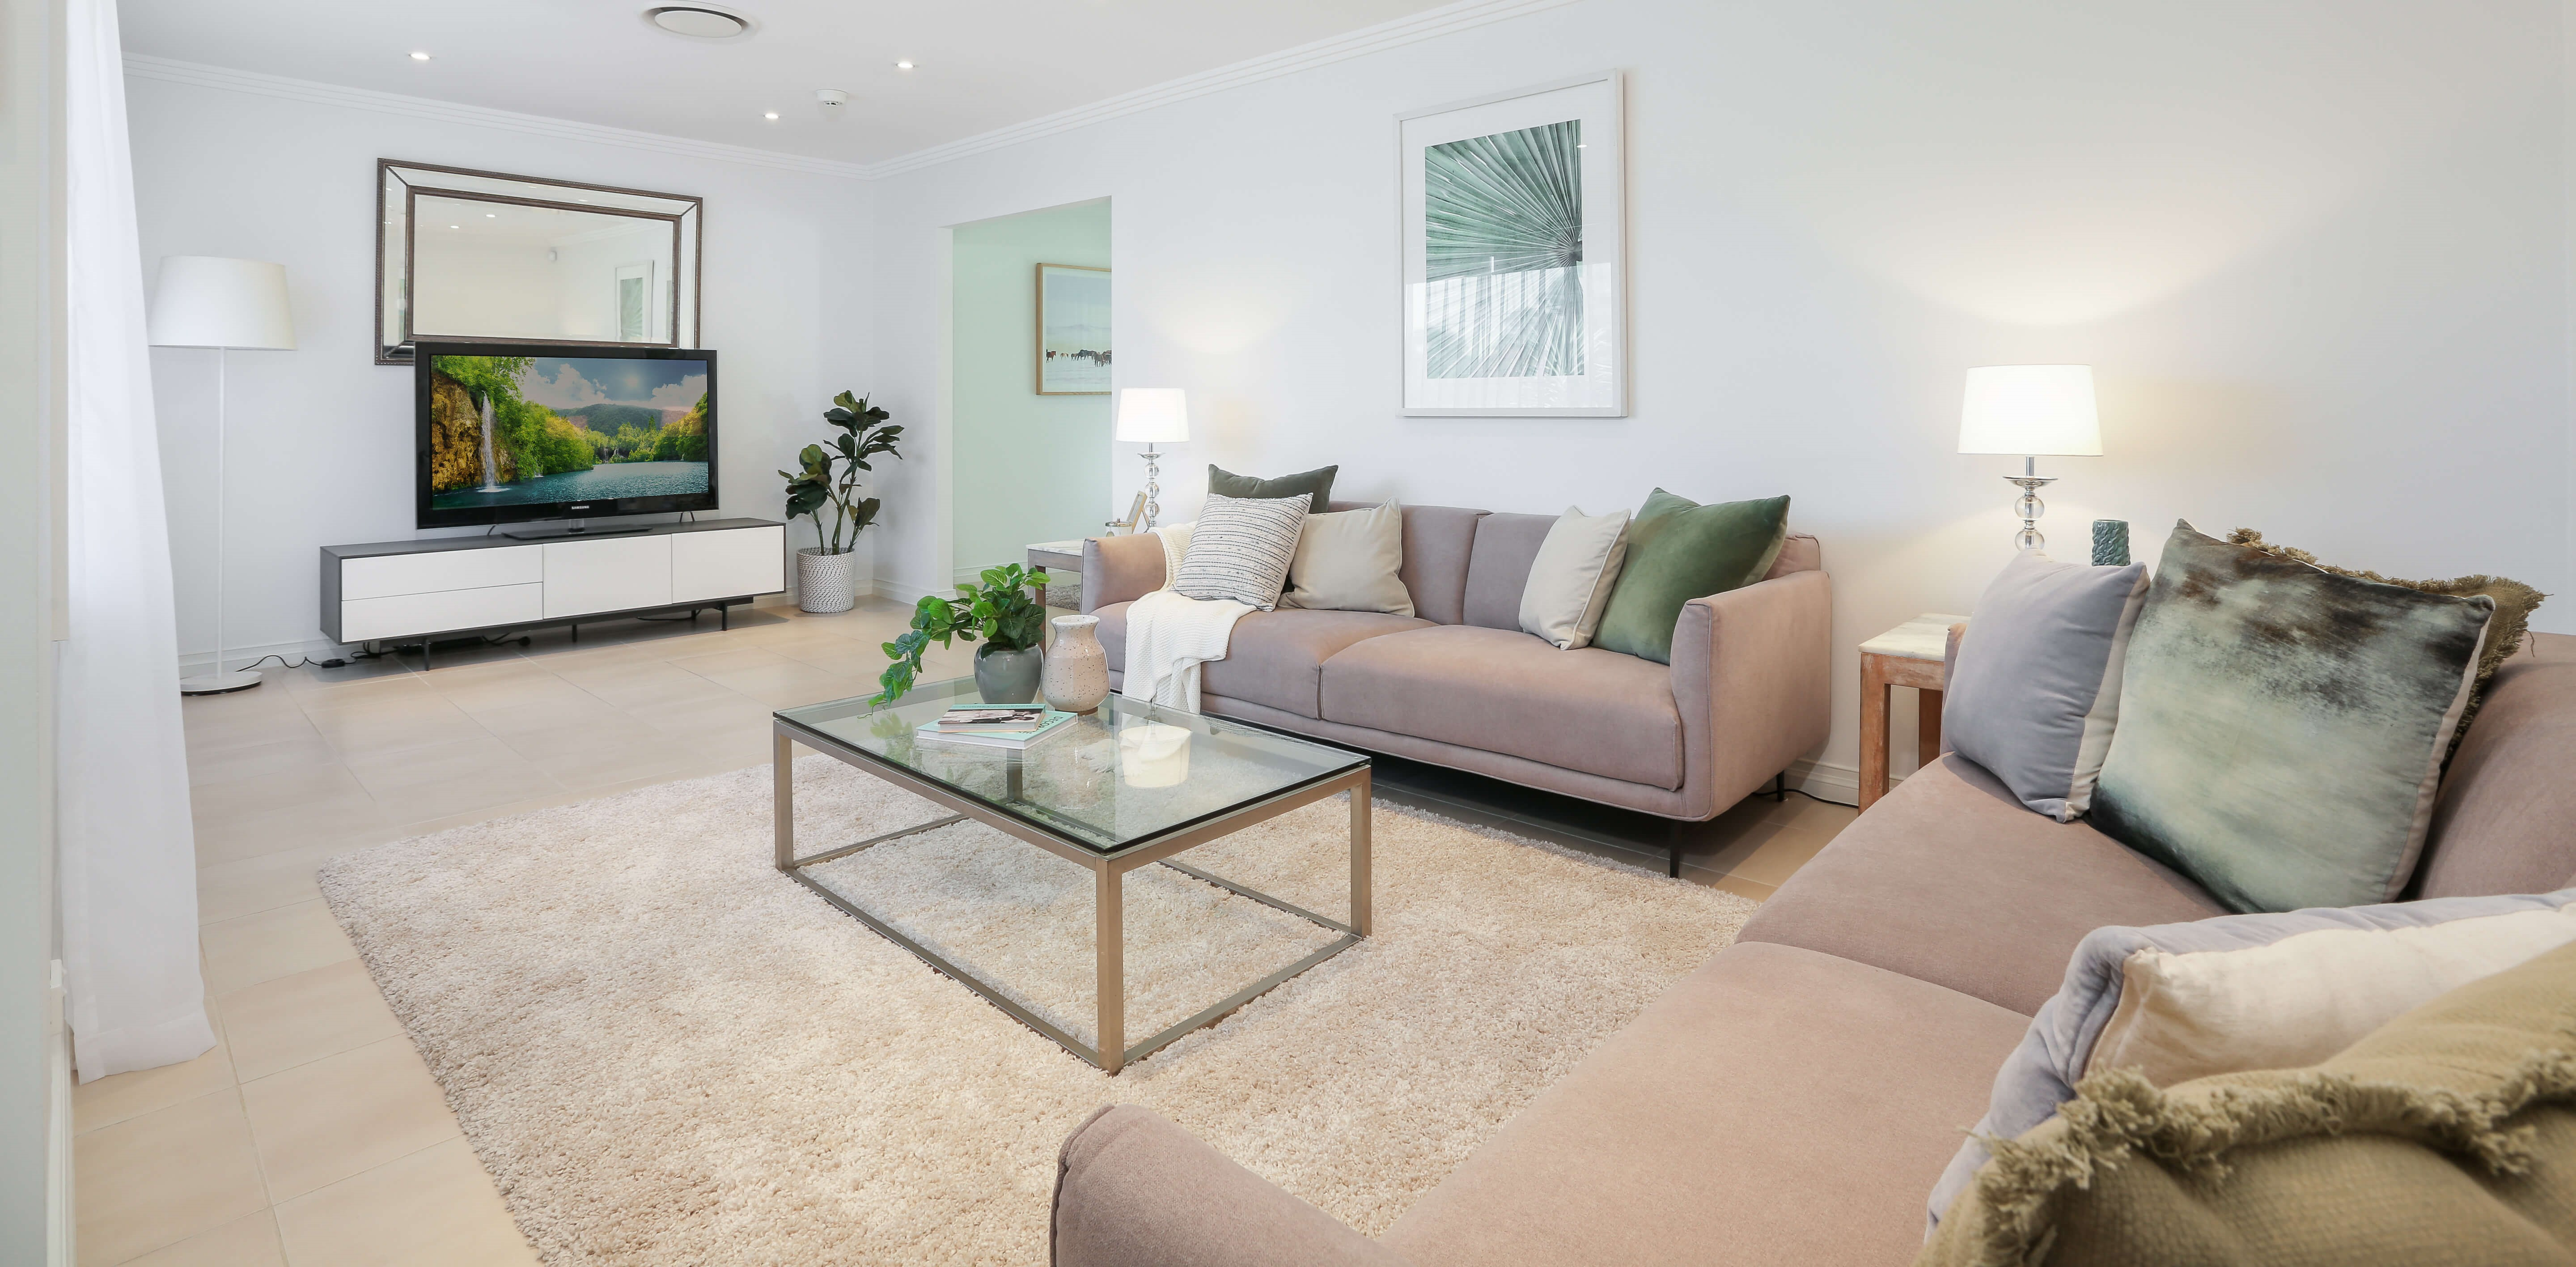 A simple solution for furnishing your home or investment property